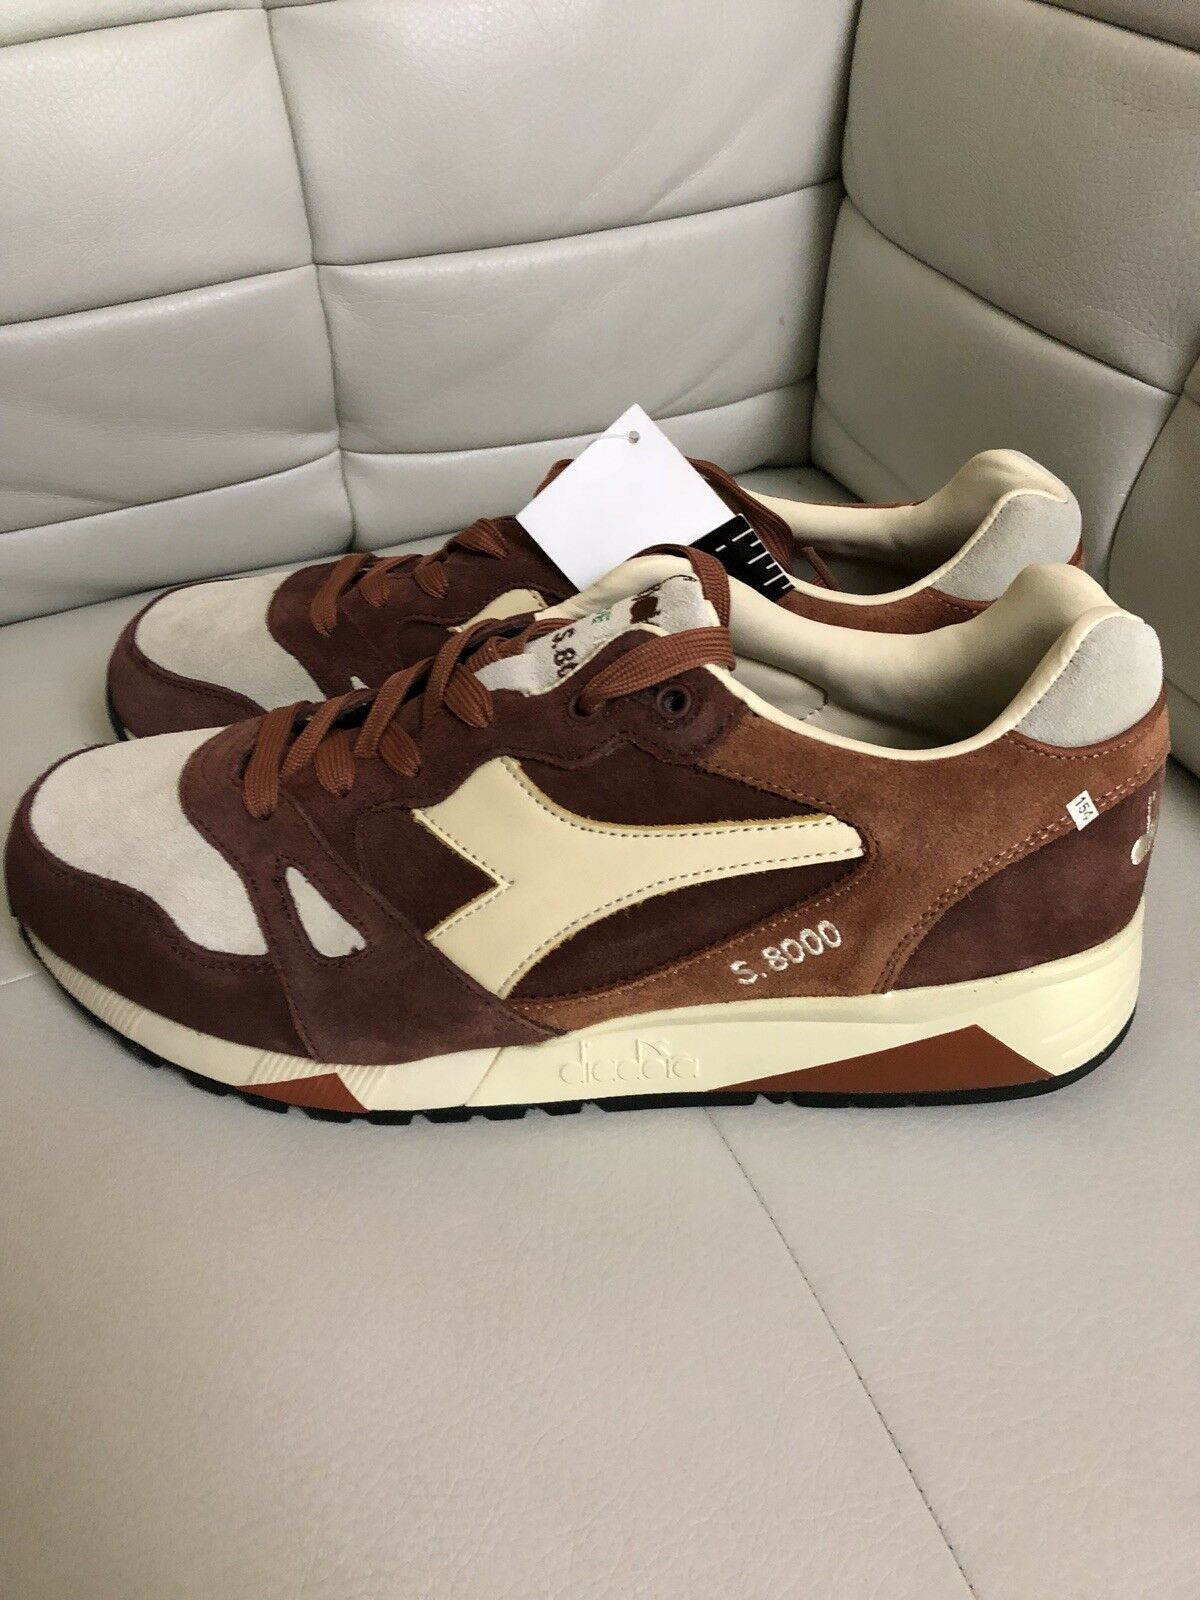 Diadora S9000 S Ita Brown Mushroom Made In Italy Size 11